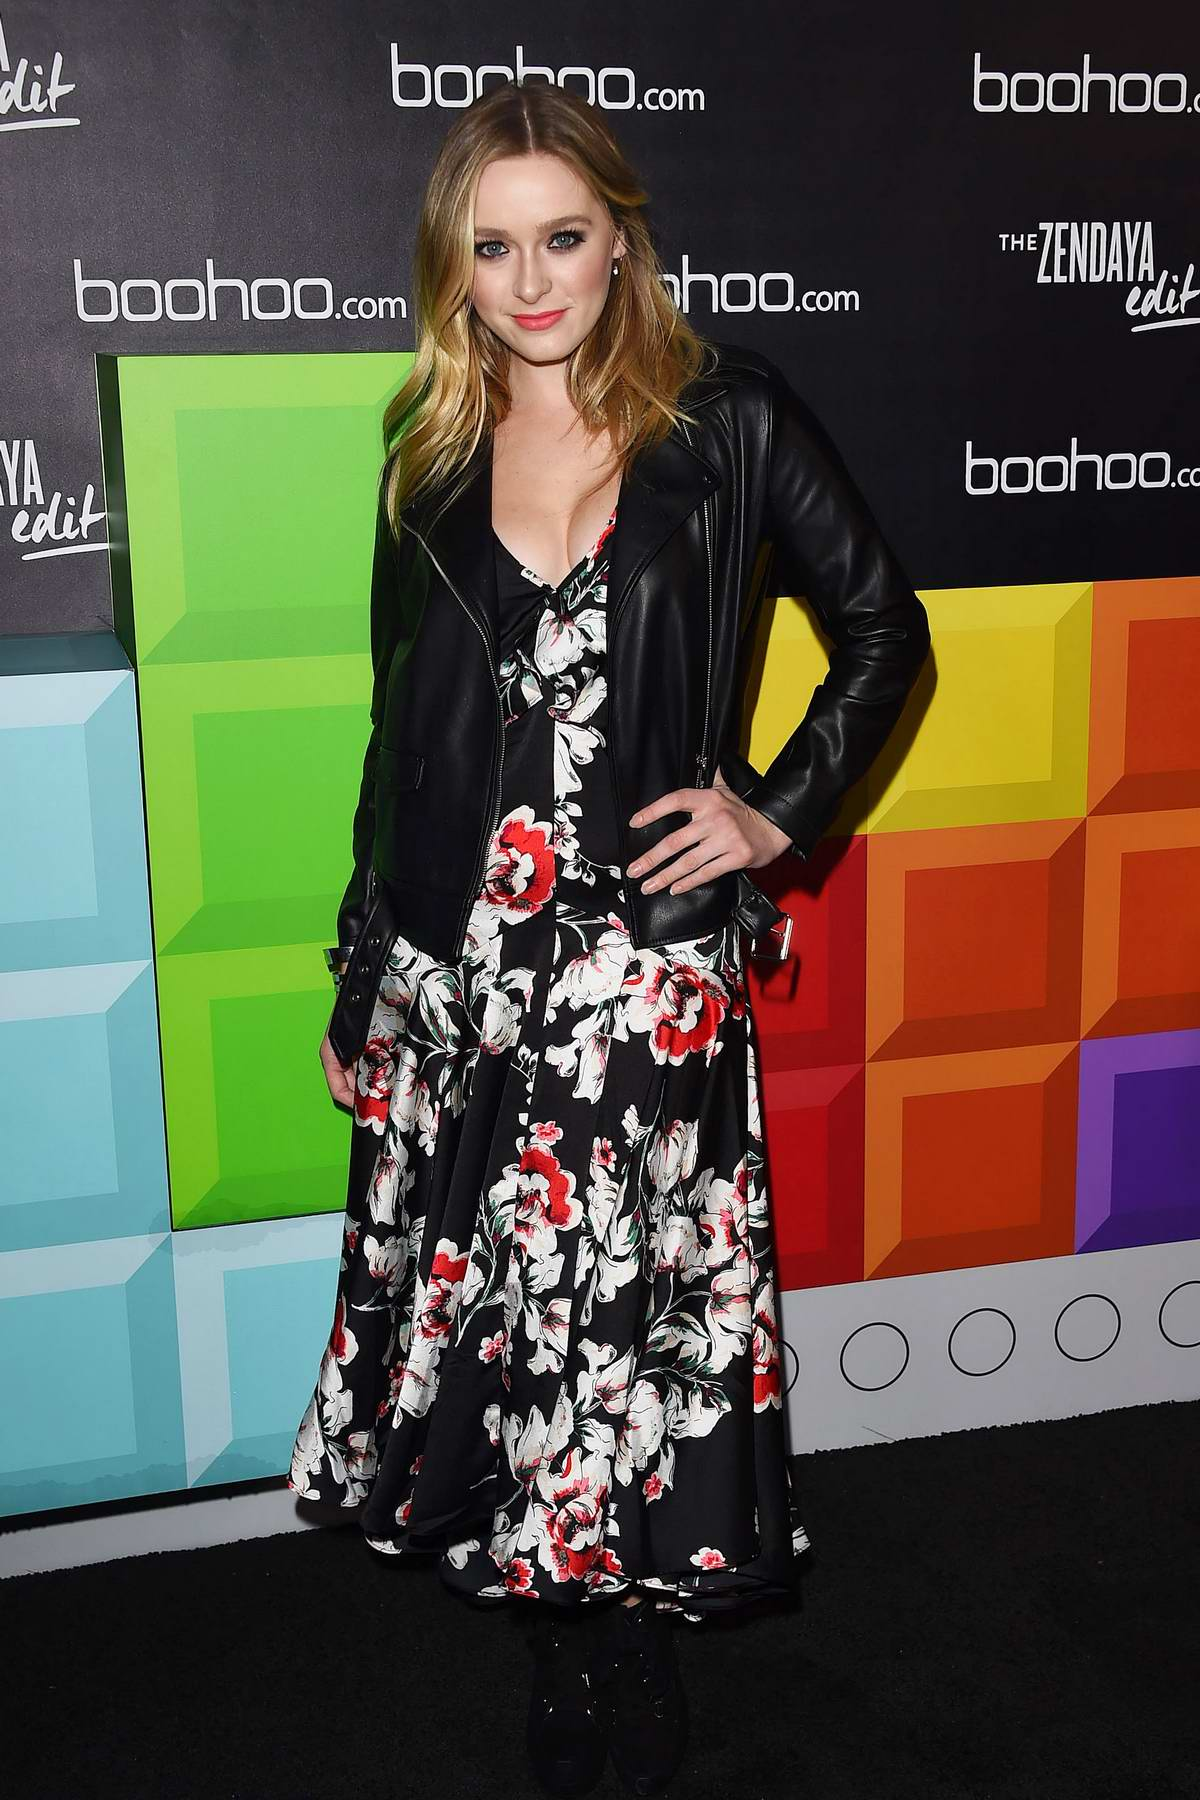 Greer Grammer at the BooHoo hosts 'The Zendaya Edit' Block Party in Los Angeles